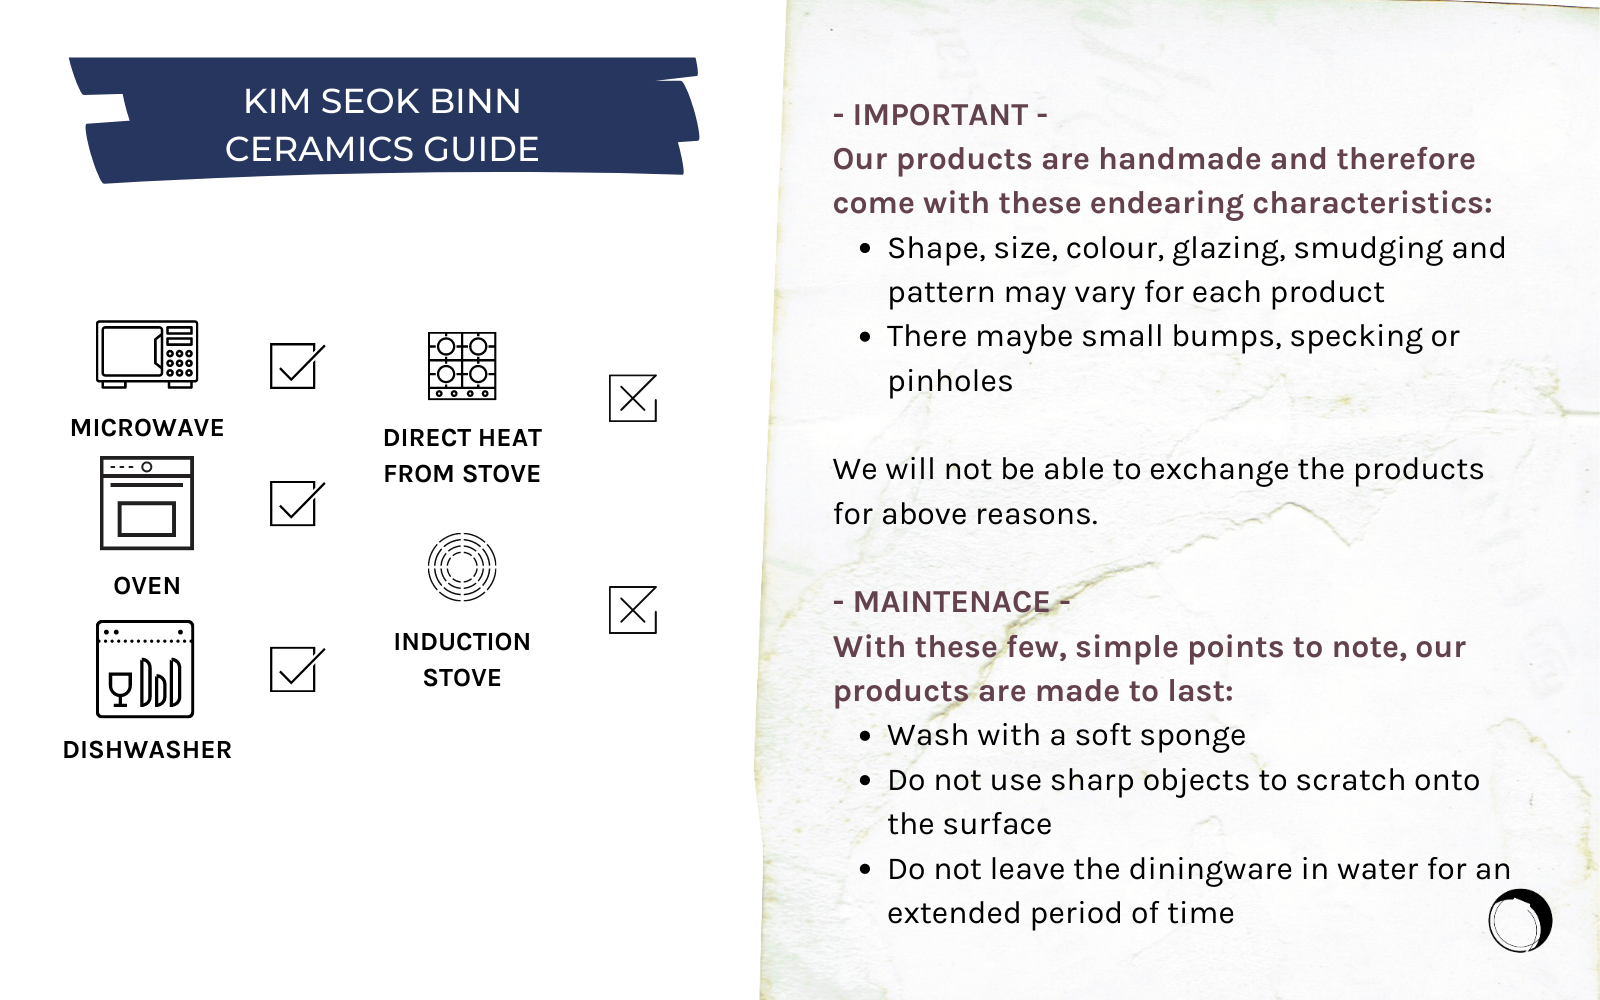 Kim Seok Binn handmade ceramics care guide